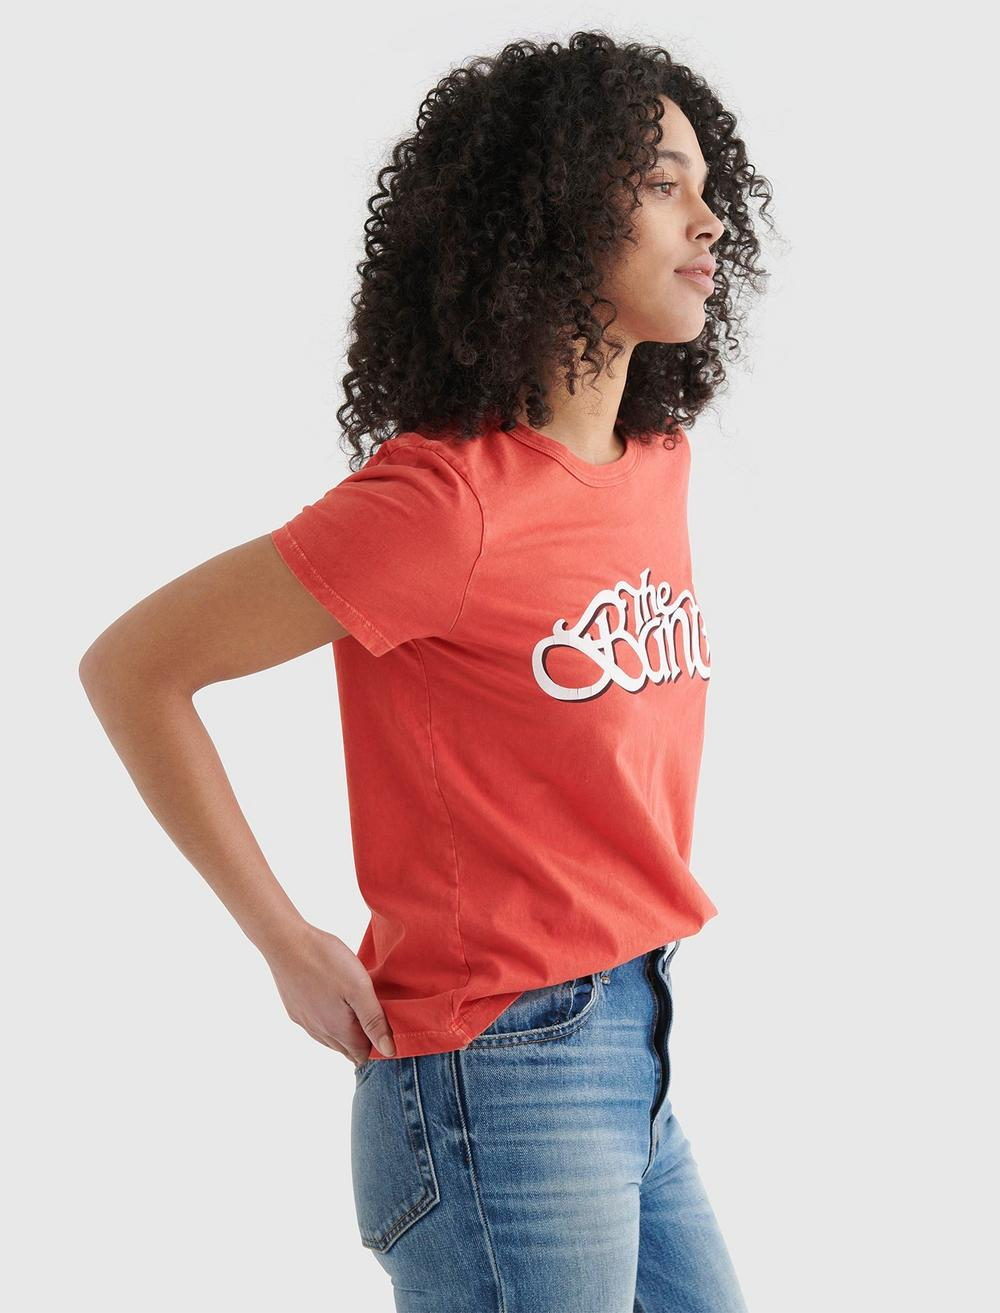 THE BAND CORE CLASSIC TEE, image 3